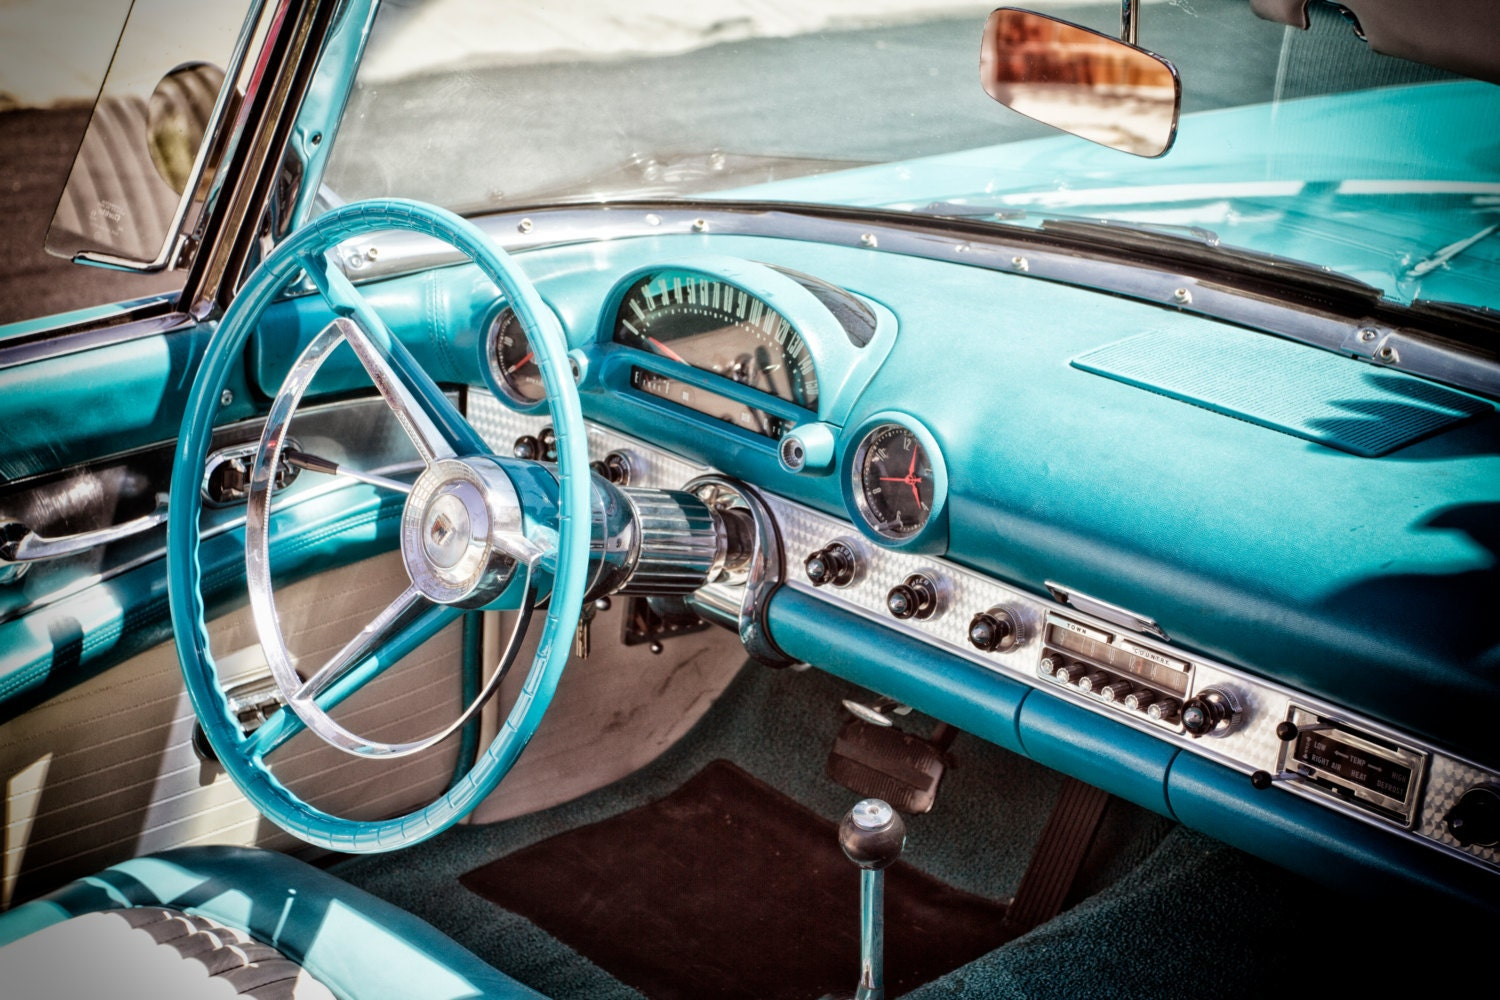 1950s Ford Thunderbird Classic Car Interior 50s Car